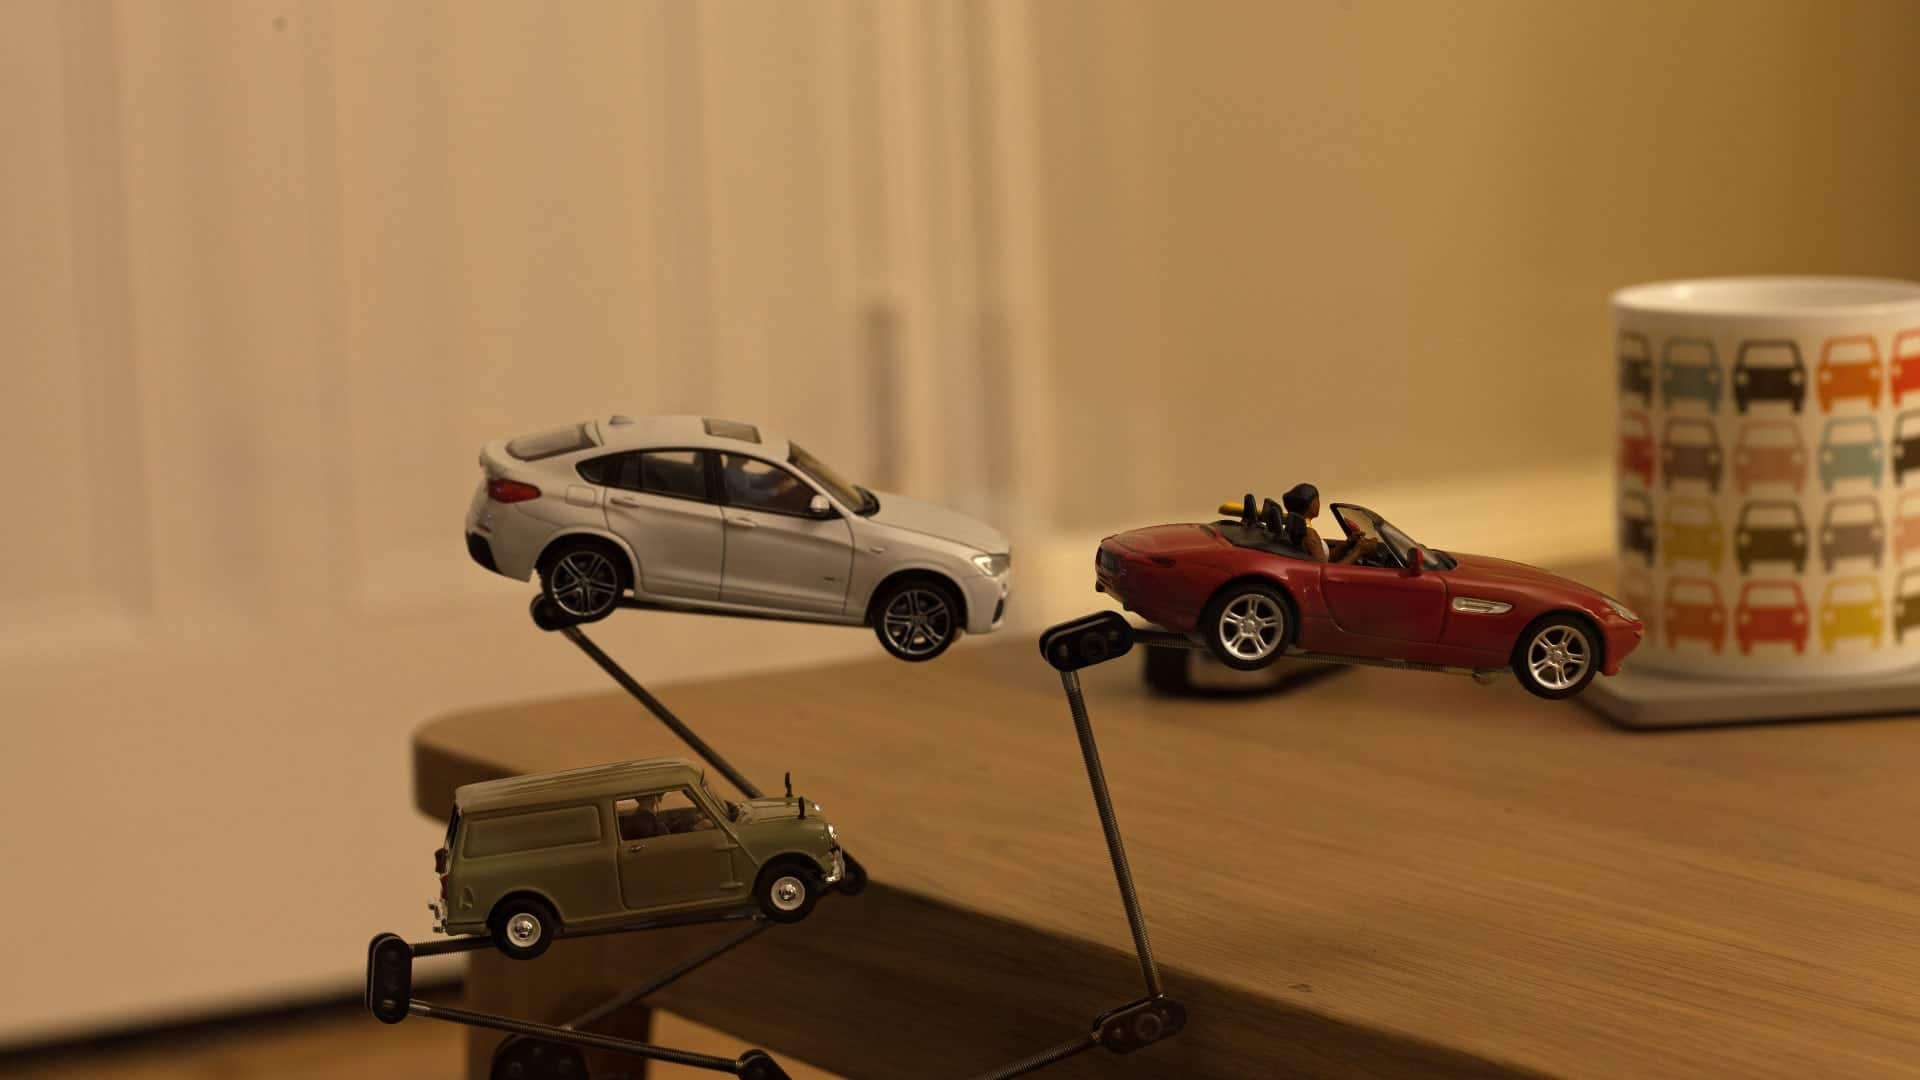 Stop motion model car jump with rigs